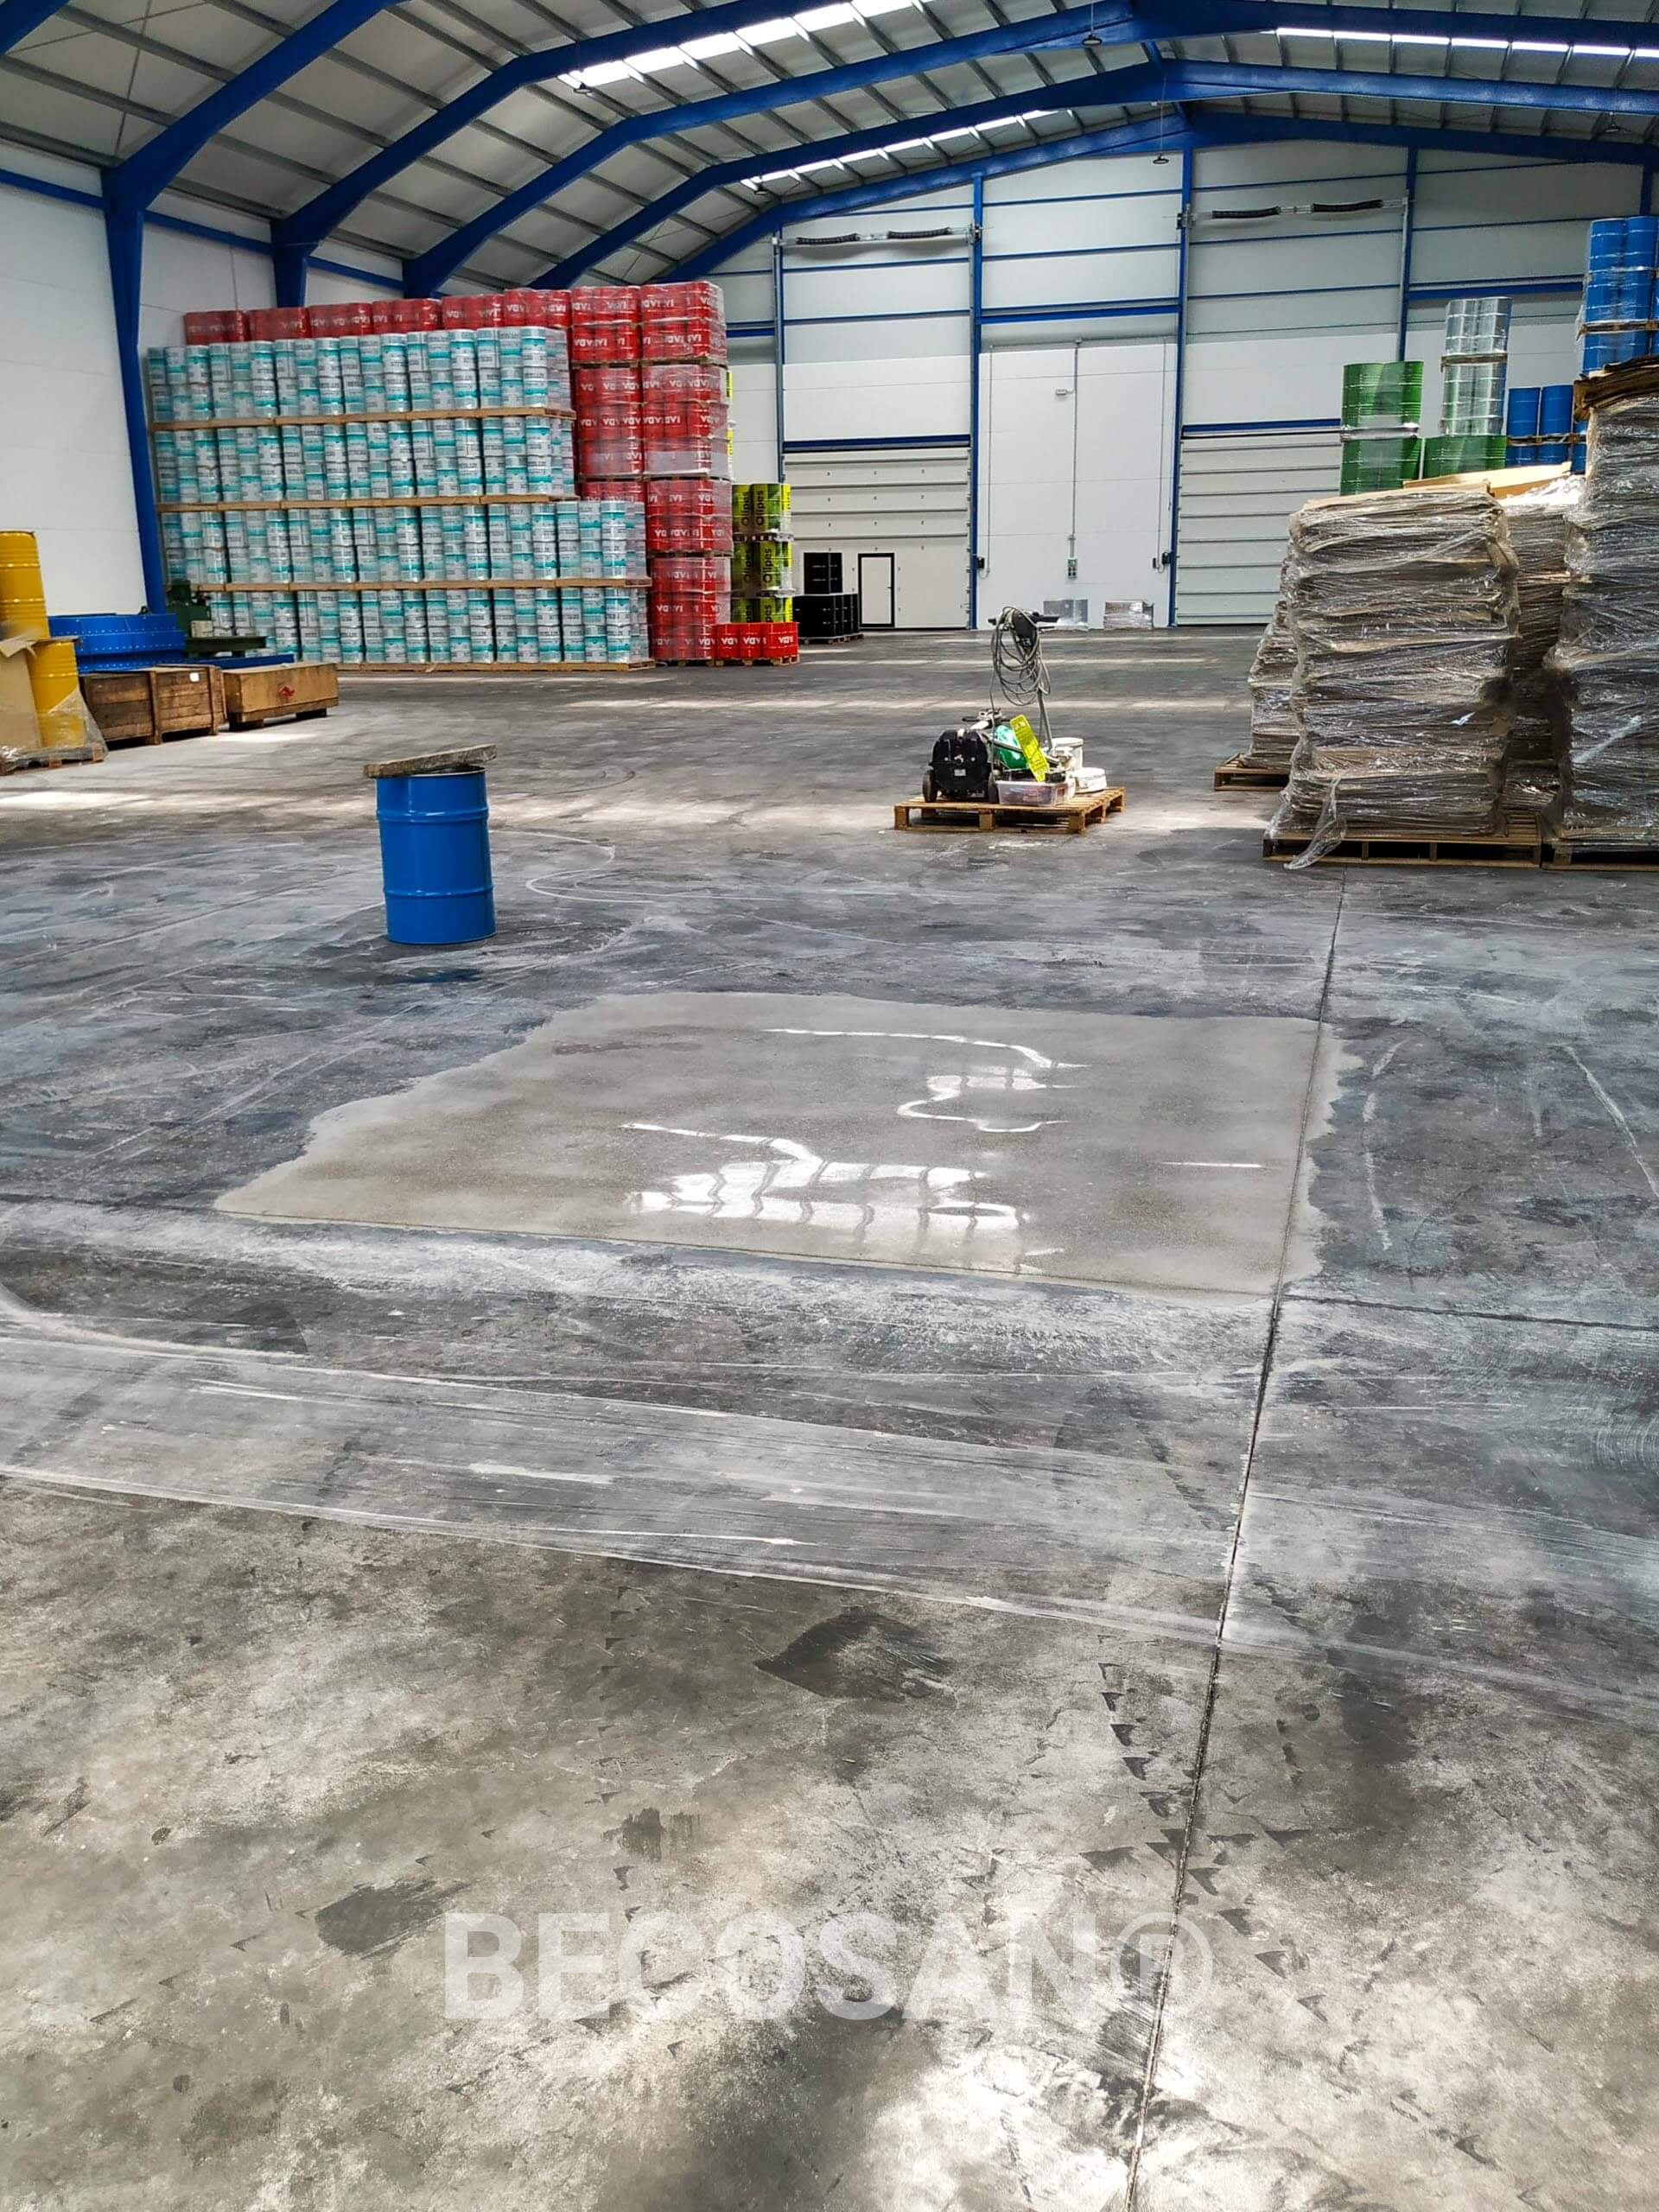 Tyre Marks Problem Warehouse Concrete Floor 03